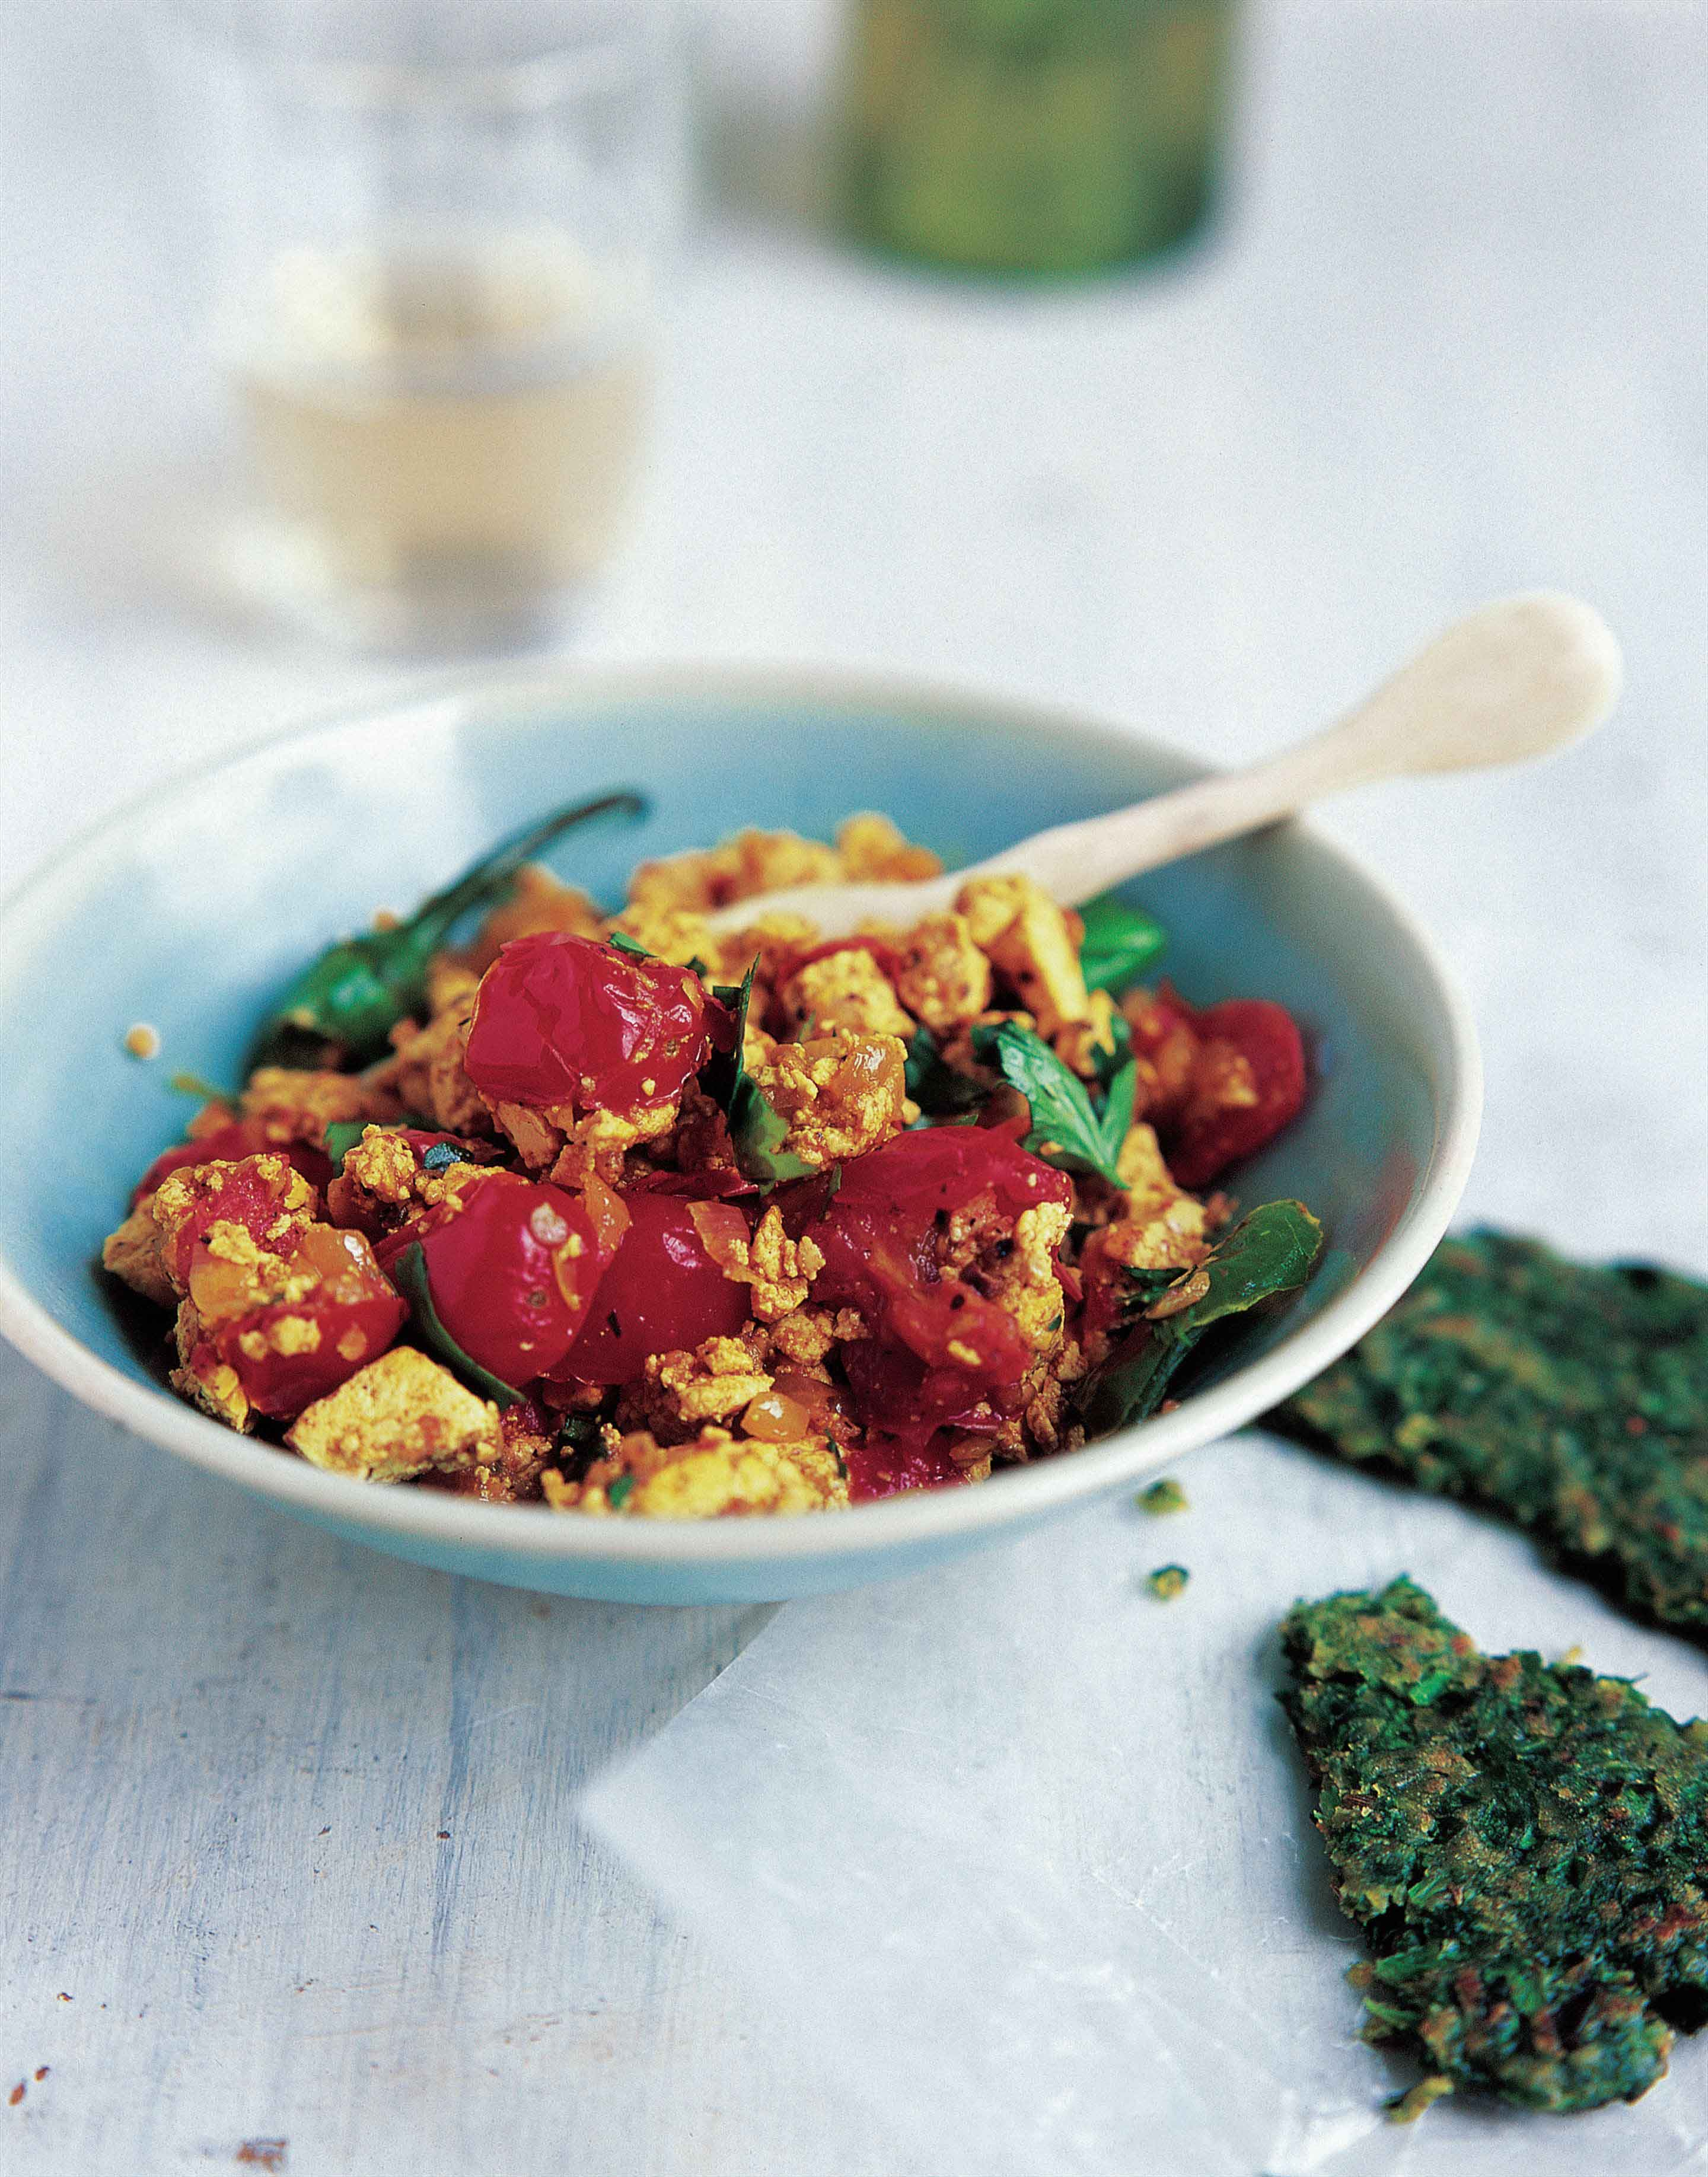 Spicy scrambled tofu